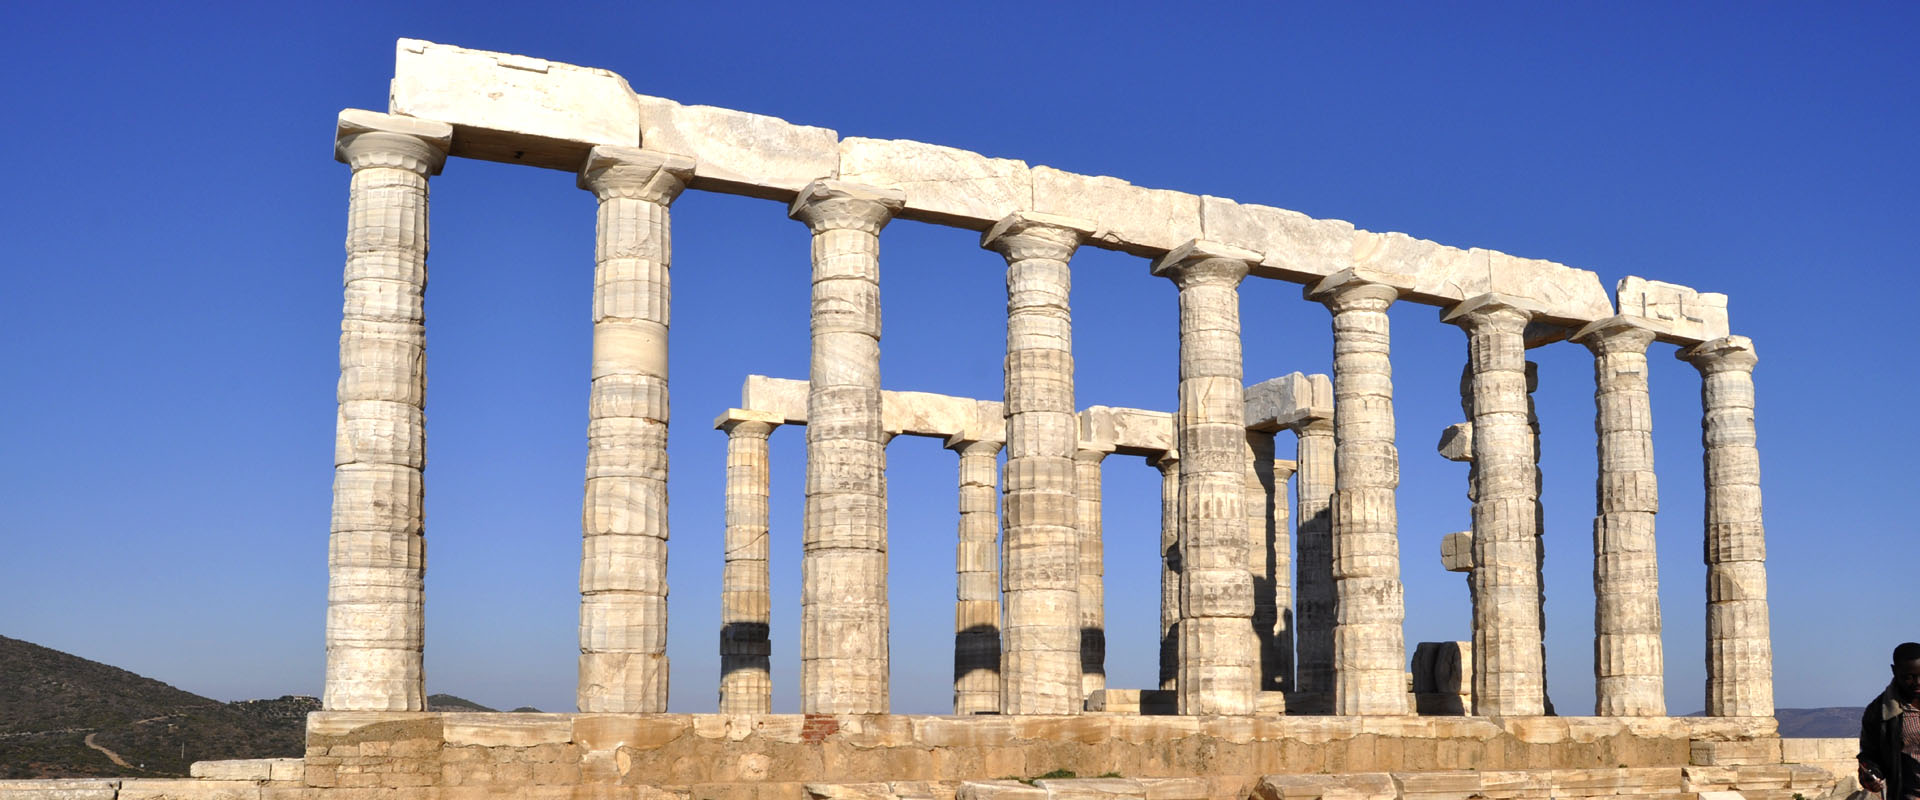 Temple of Poseidon at Cape Sounion - Private tours Athens Greece